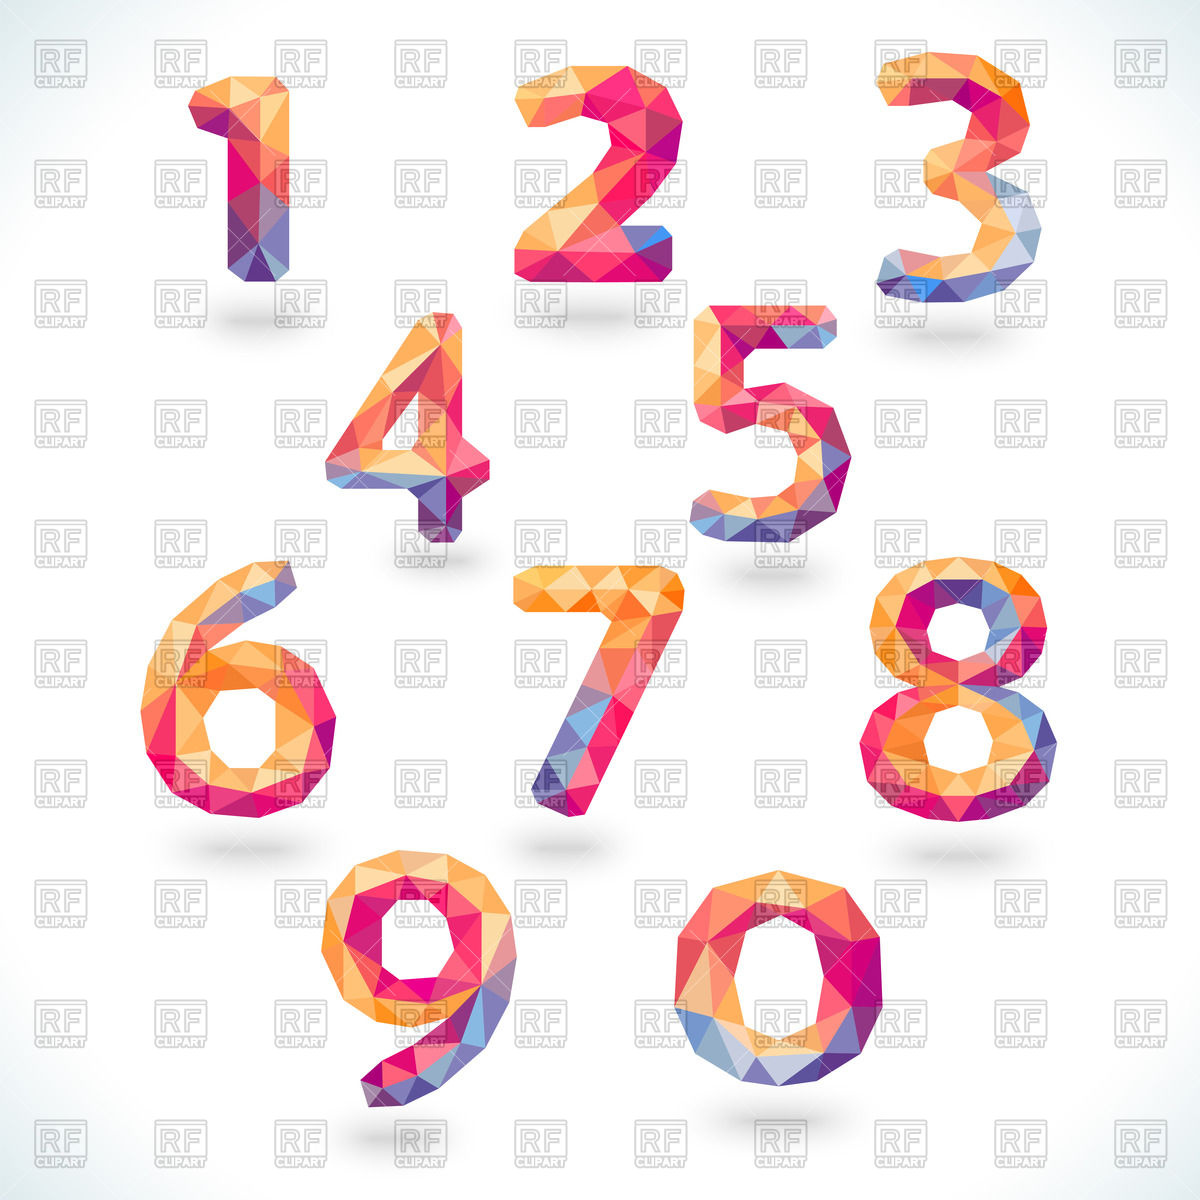 Numbers (digits) in modern polygonal crystal style Vector Image.